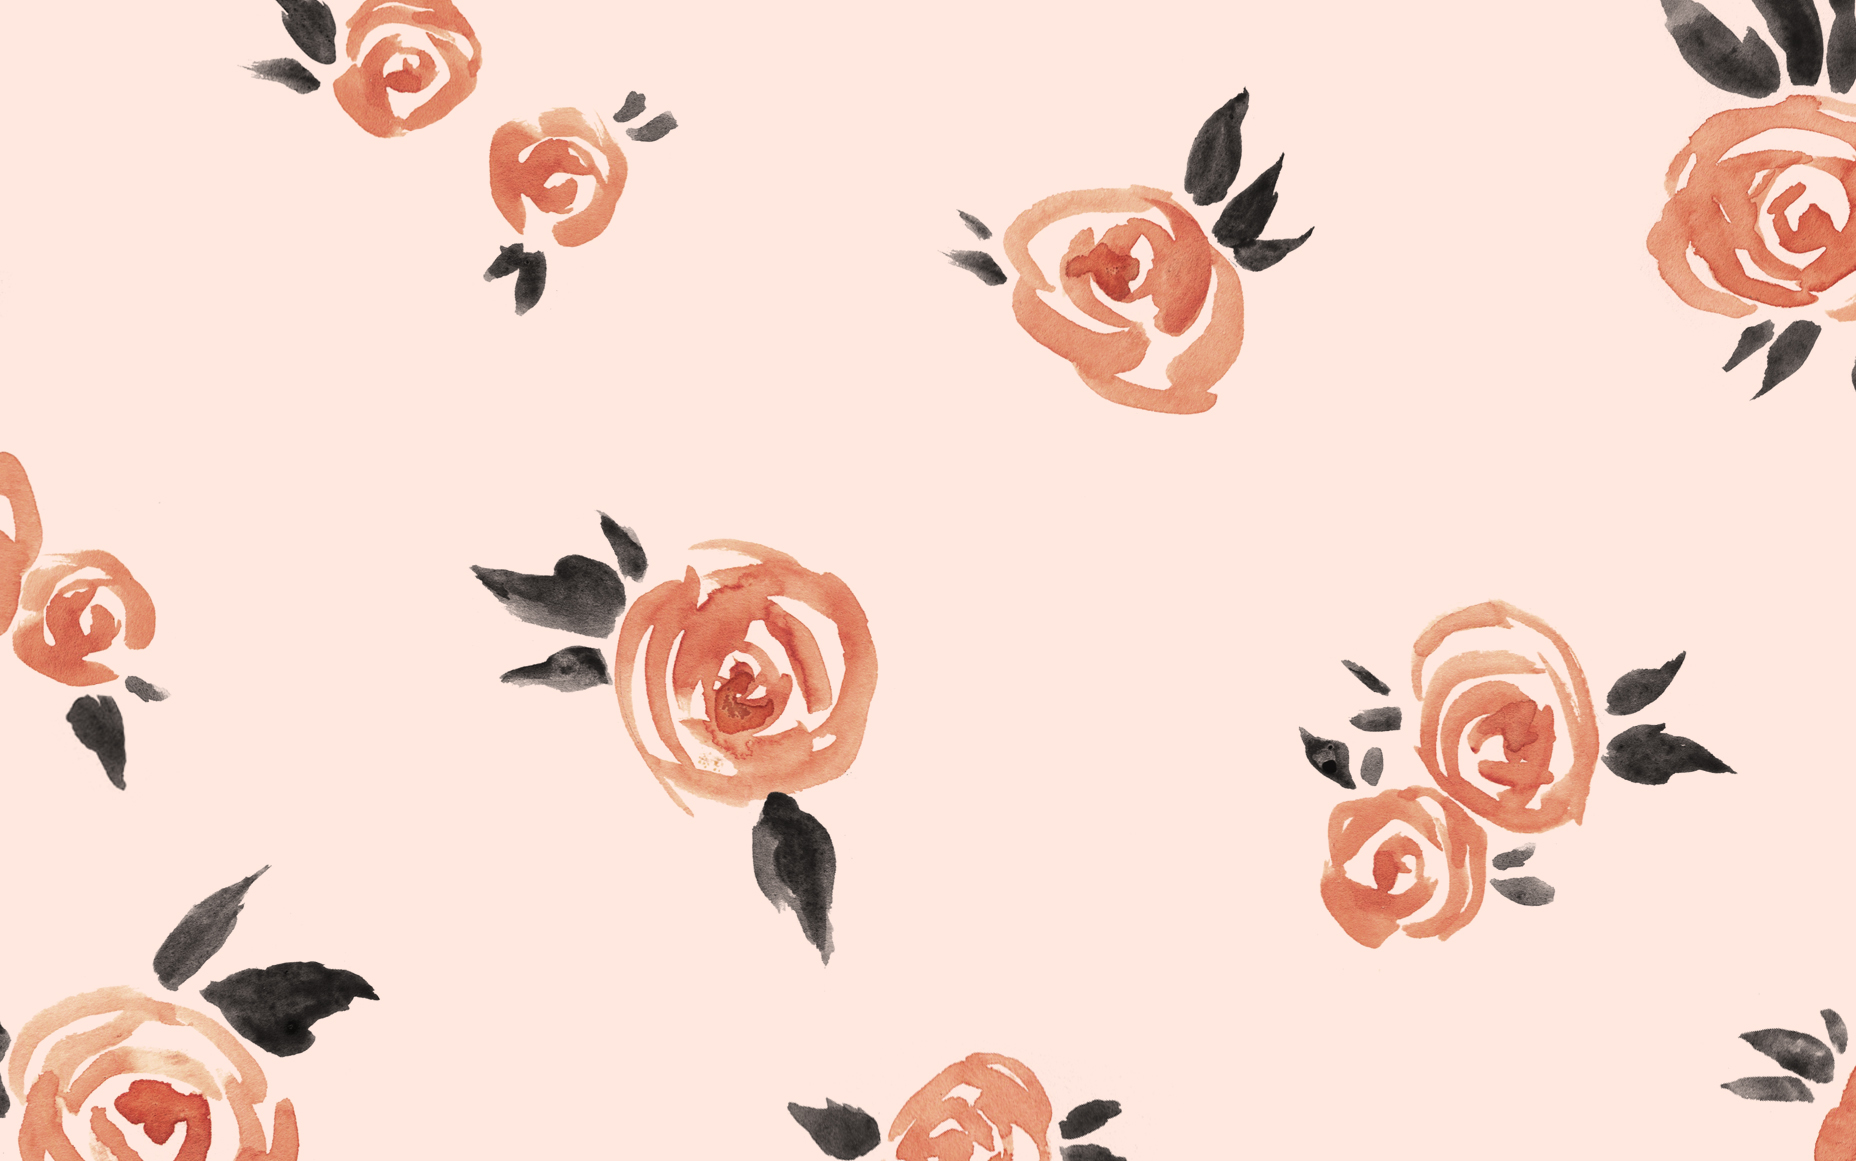 desktop roses idear from christina juse this for wrapping paper or bookmarks printables a little bit of everything pinterest wallpaper